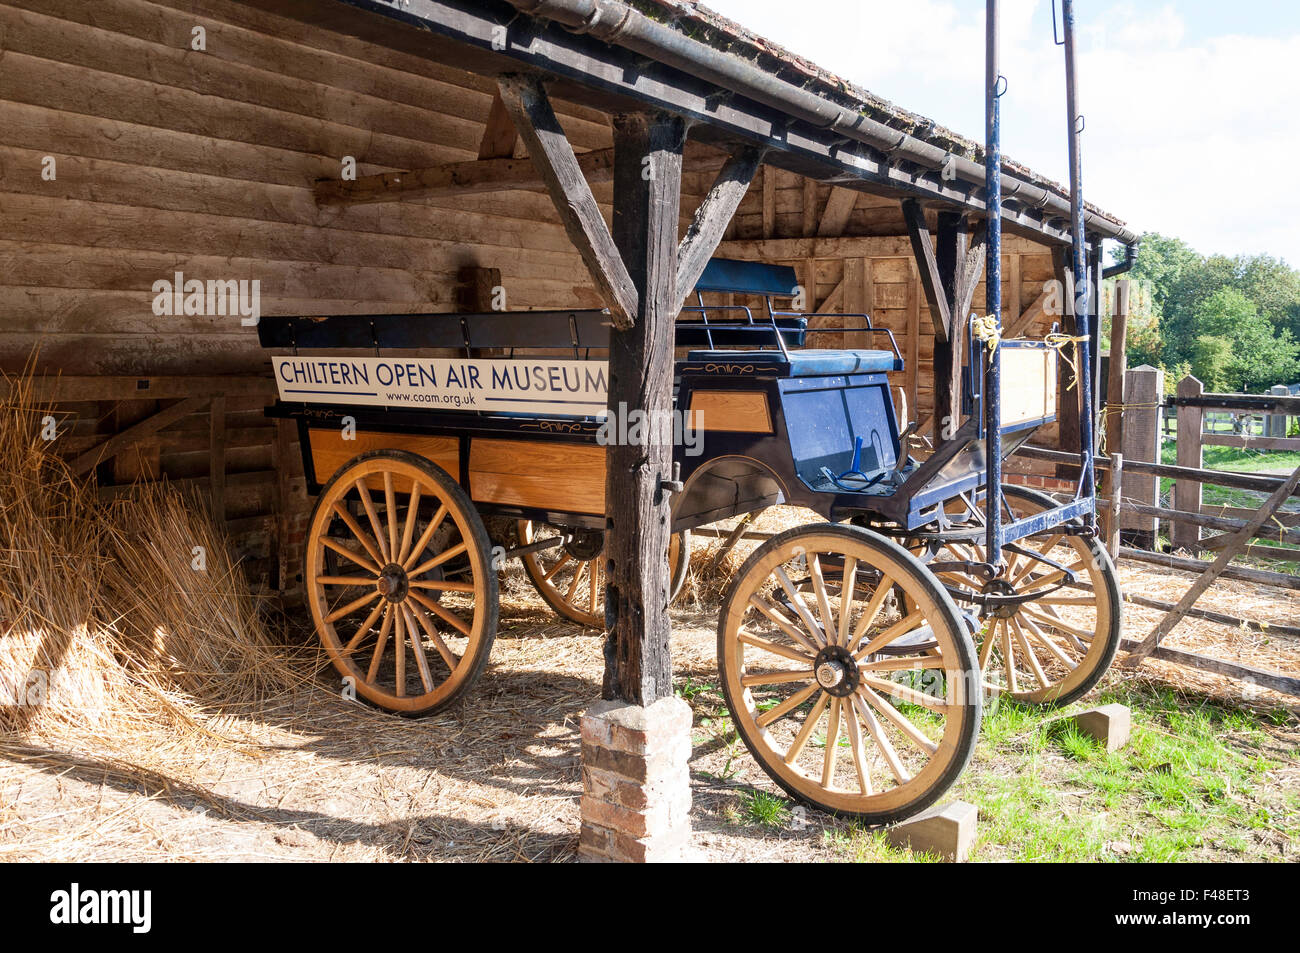 Horse carriage at Chiltern Open Air Museum, Newland Park, Chalfont St Giles, Buckinghamshire, England, United Kingdom - Stock Image